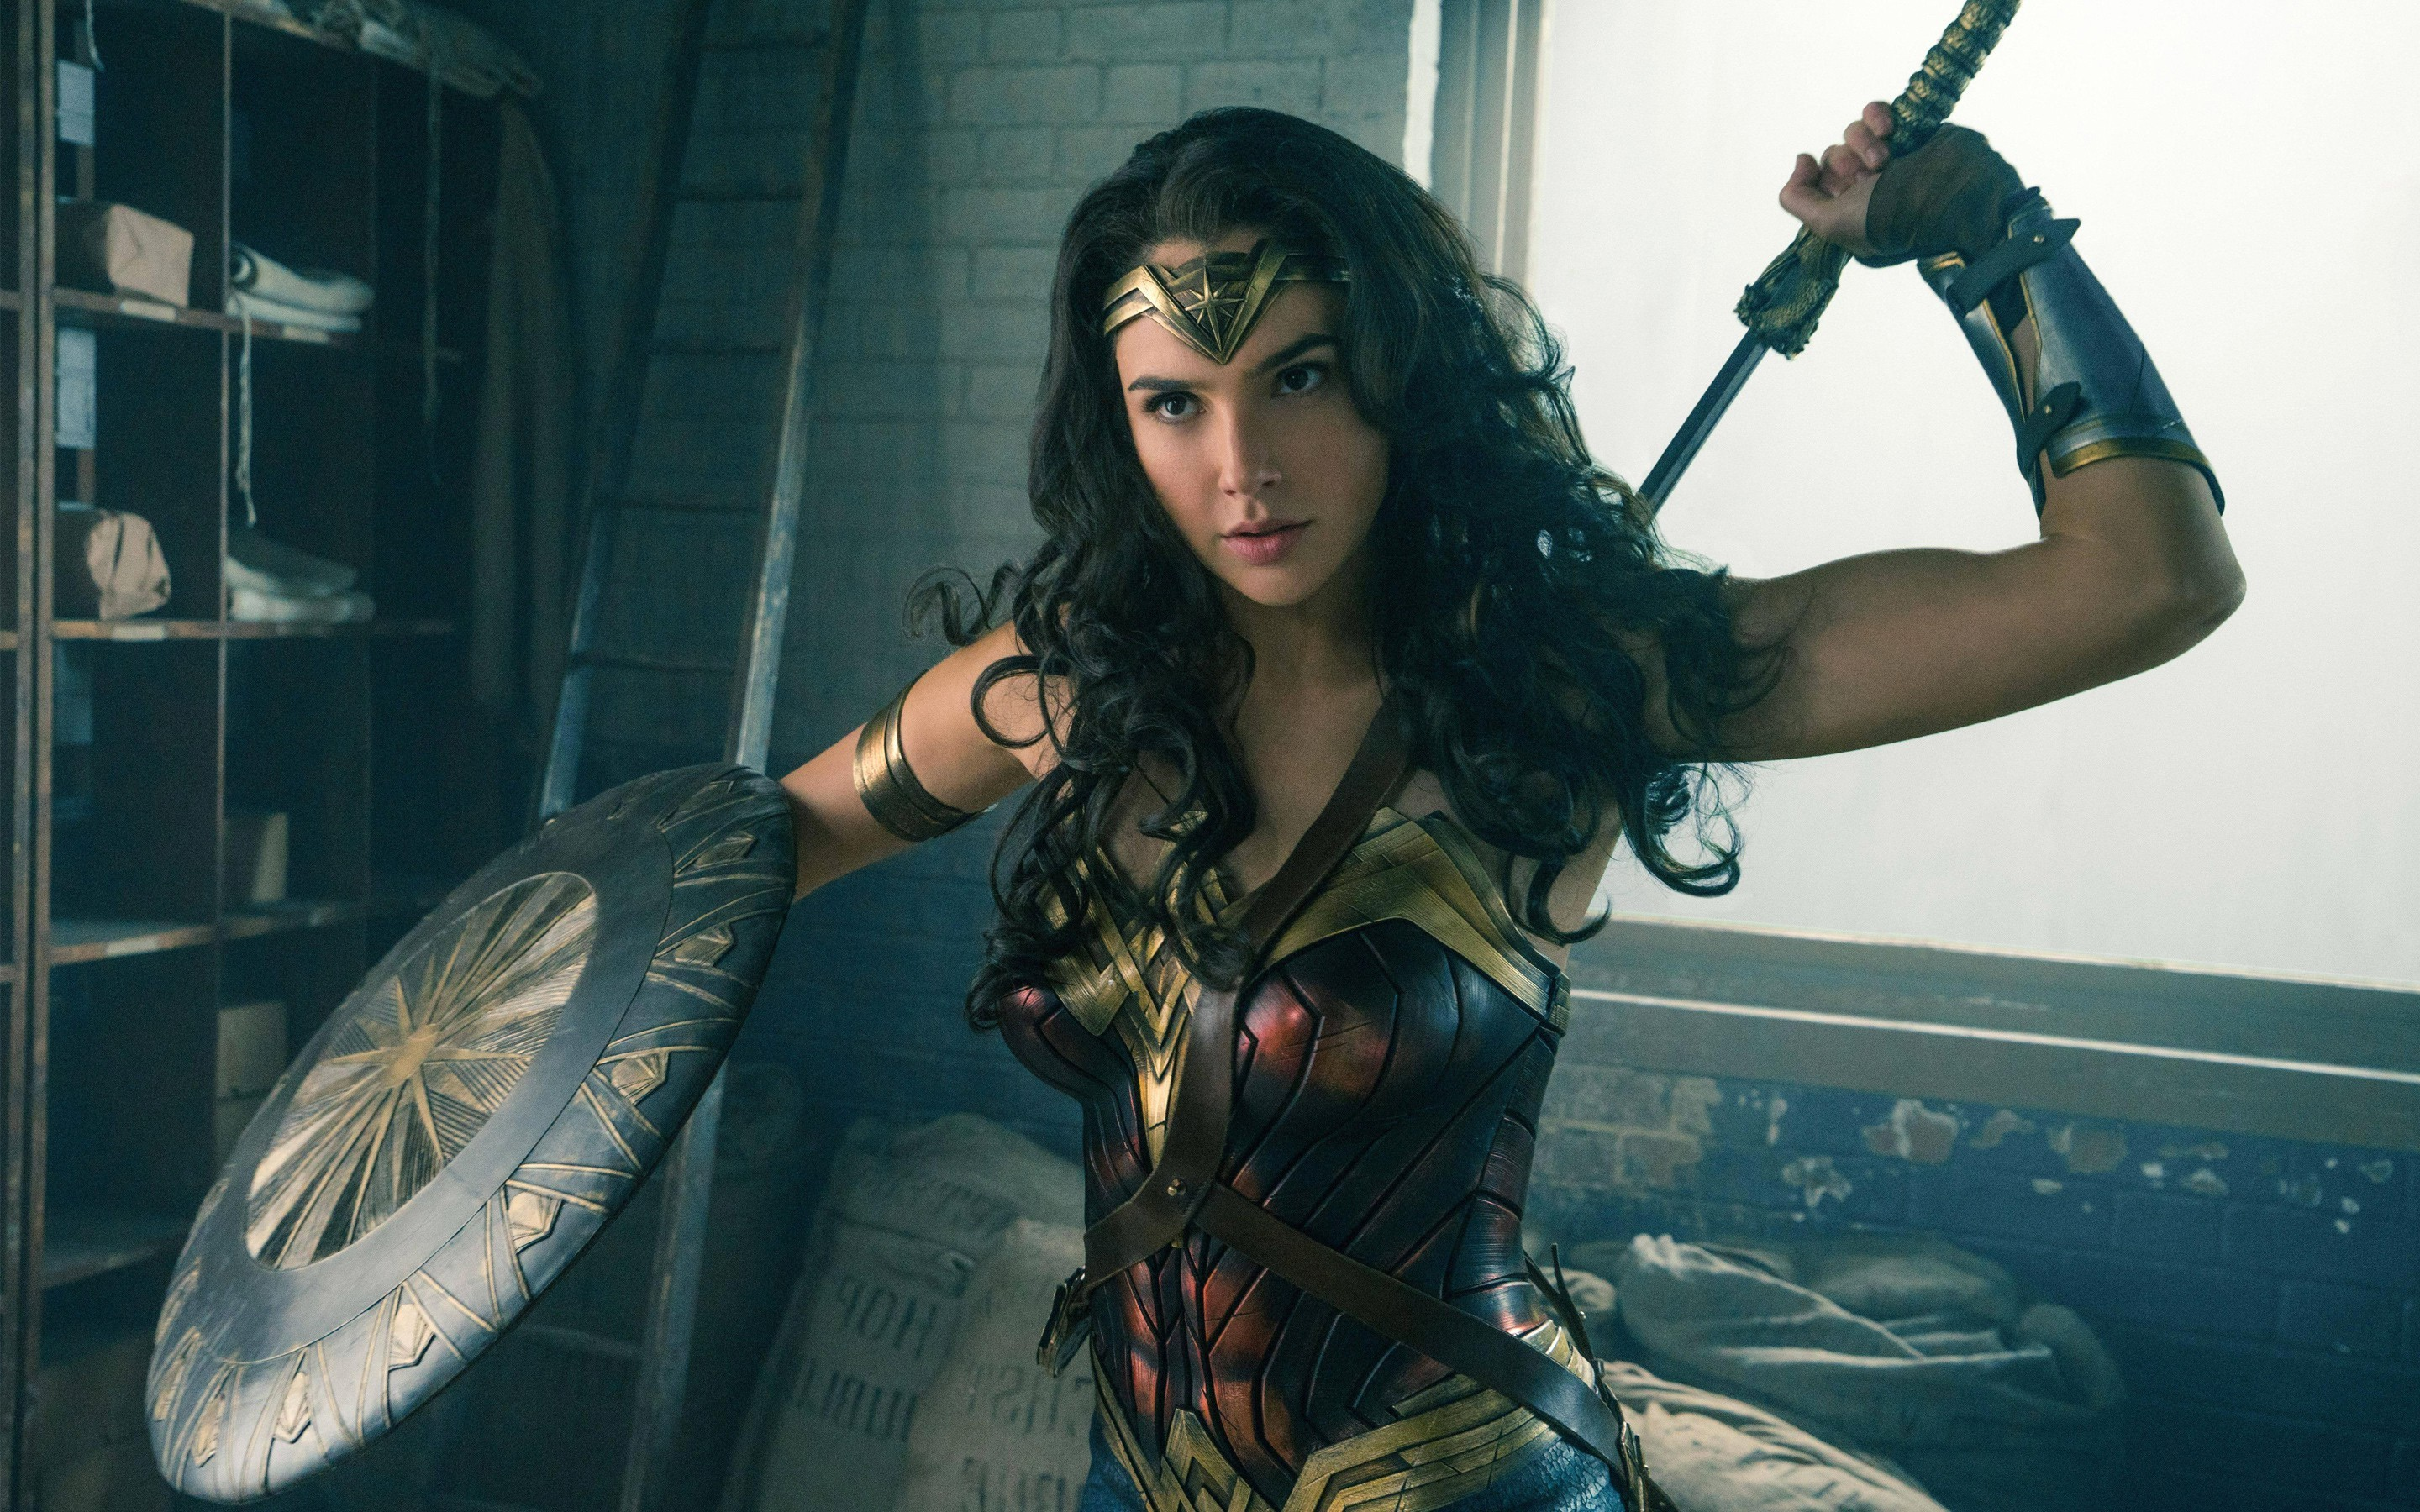 Lebanon to ban Wonder Woman 'because actress who plays her is Israeli'